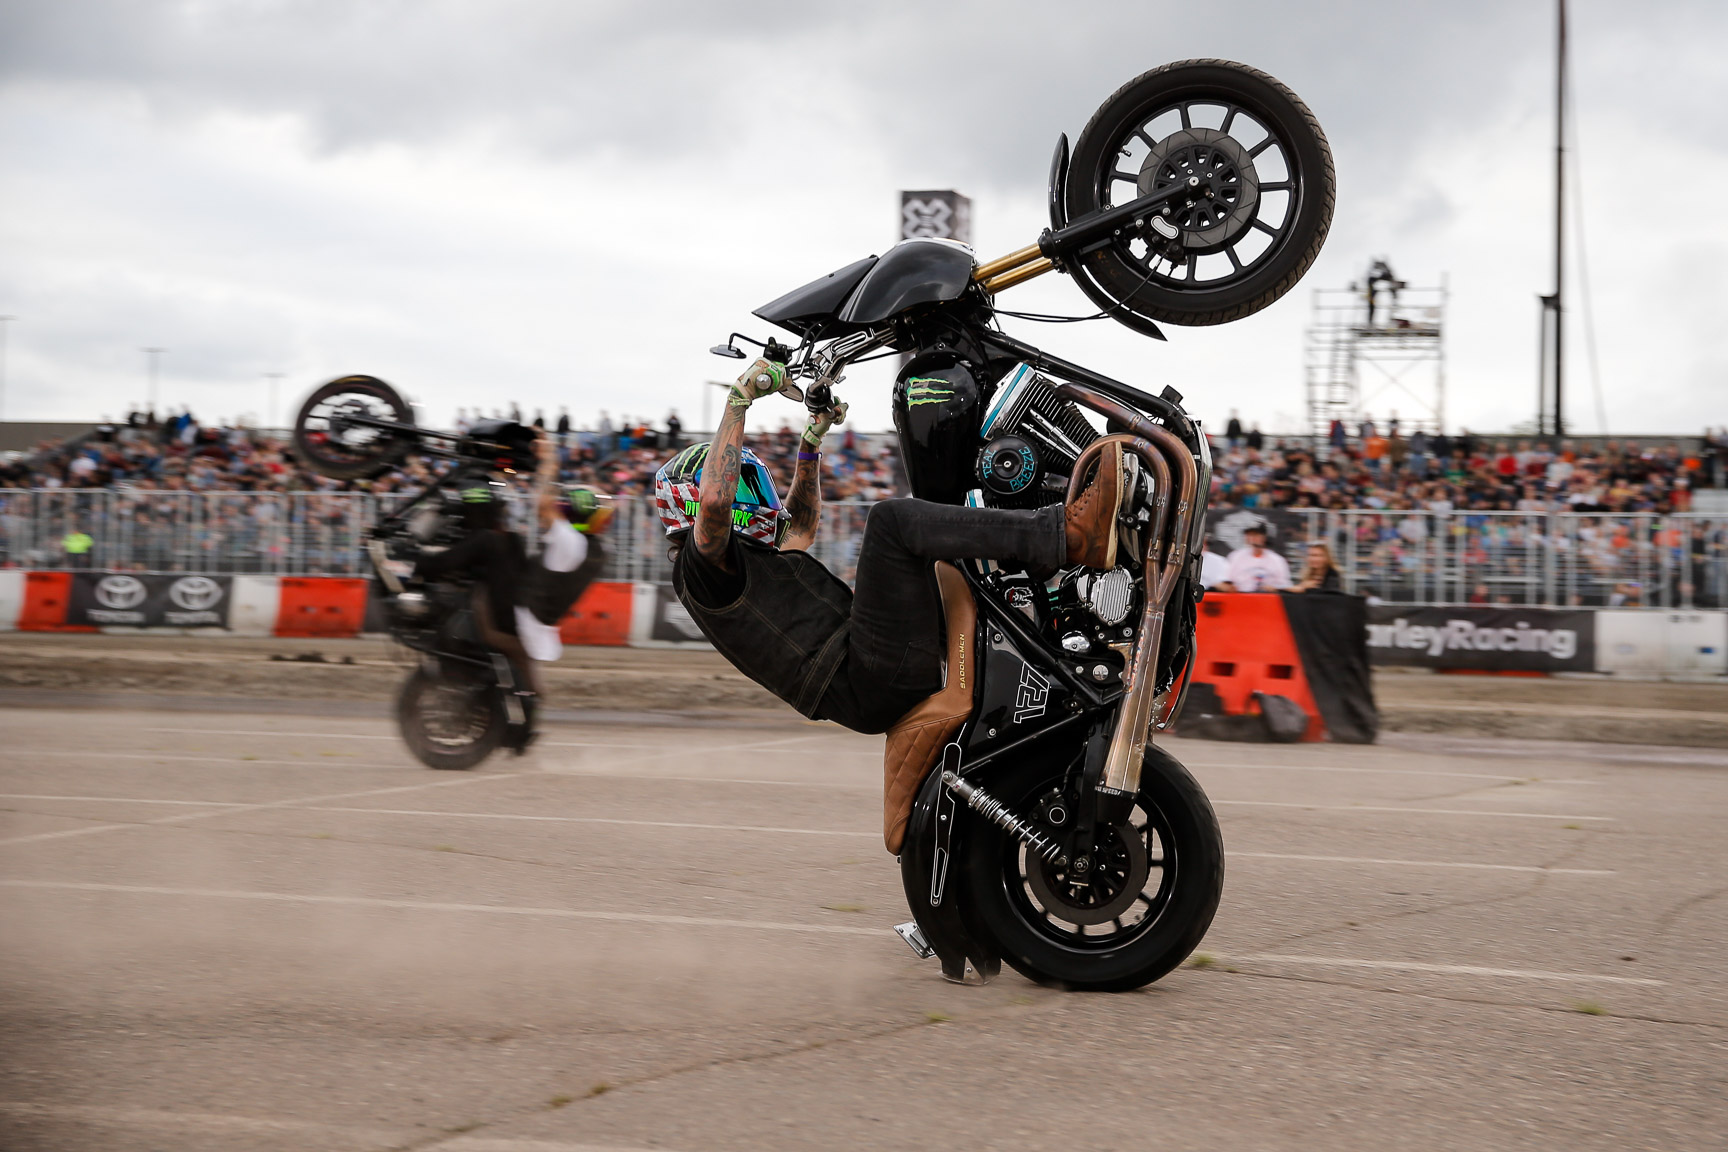 Based in Northern California, UNKNOWN Industries is a team of dedicated Harley riders who found a passion doing stunts on their Harley-Davidsons. They fired up the crowd before the start of Harley-Davidson Flat Track races on Thursday night in Minneapolis.